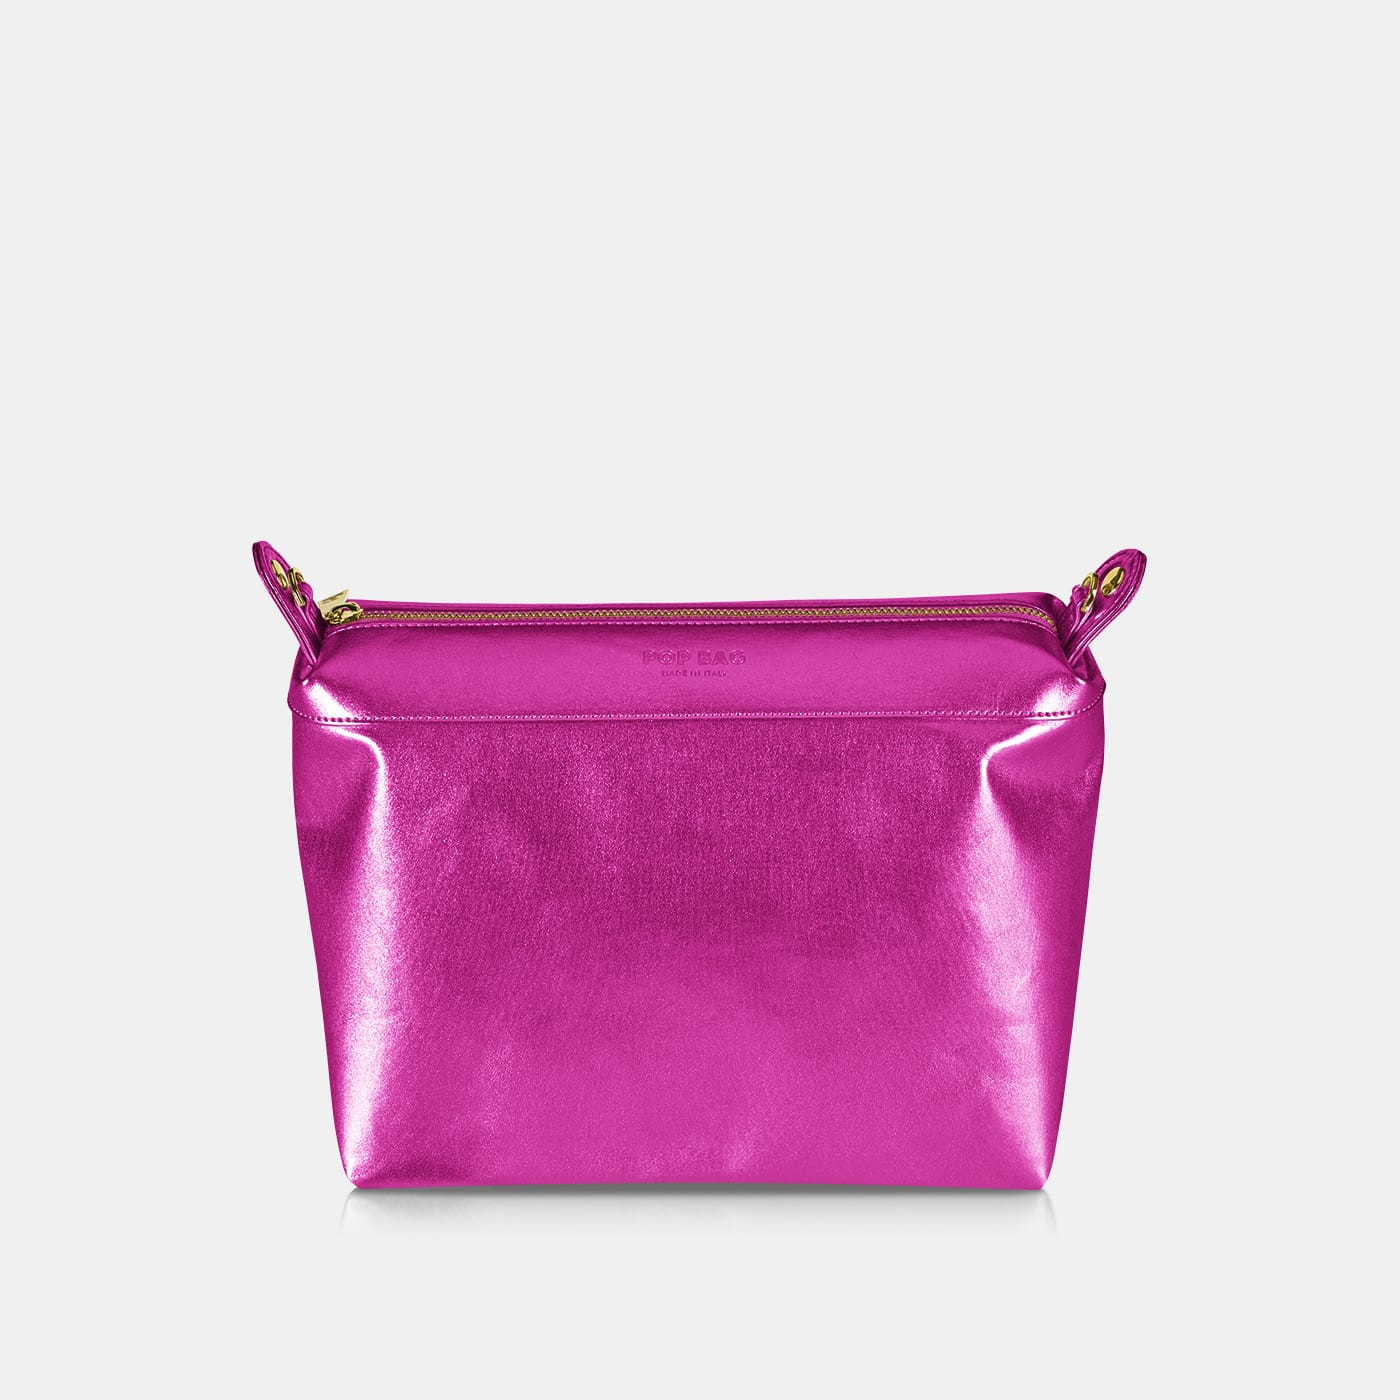 Pop Rase - Bag In Bag - Fuchsia Metal - Medium